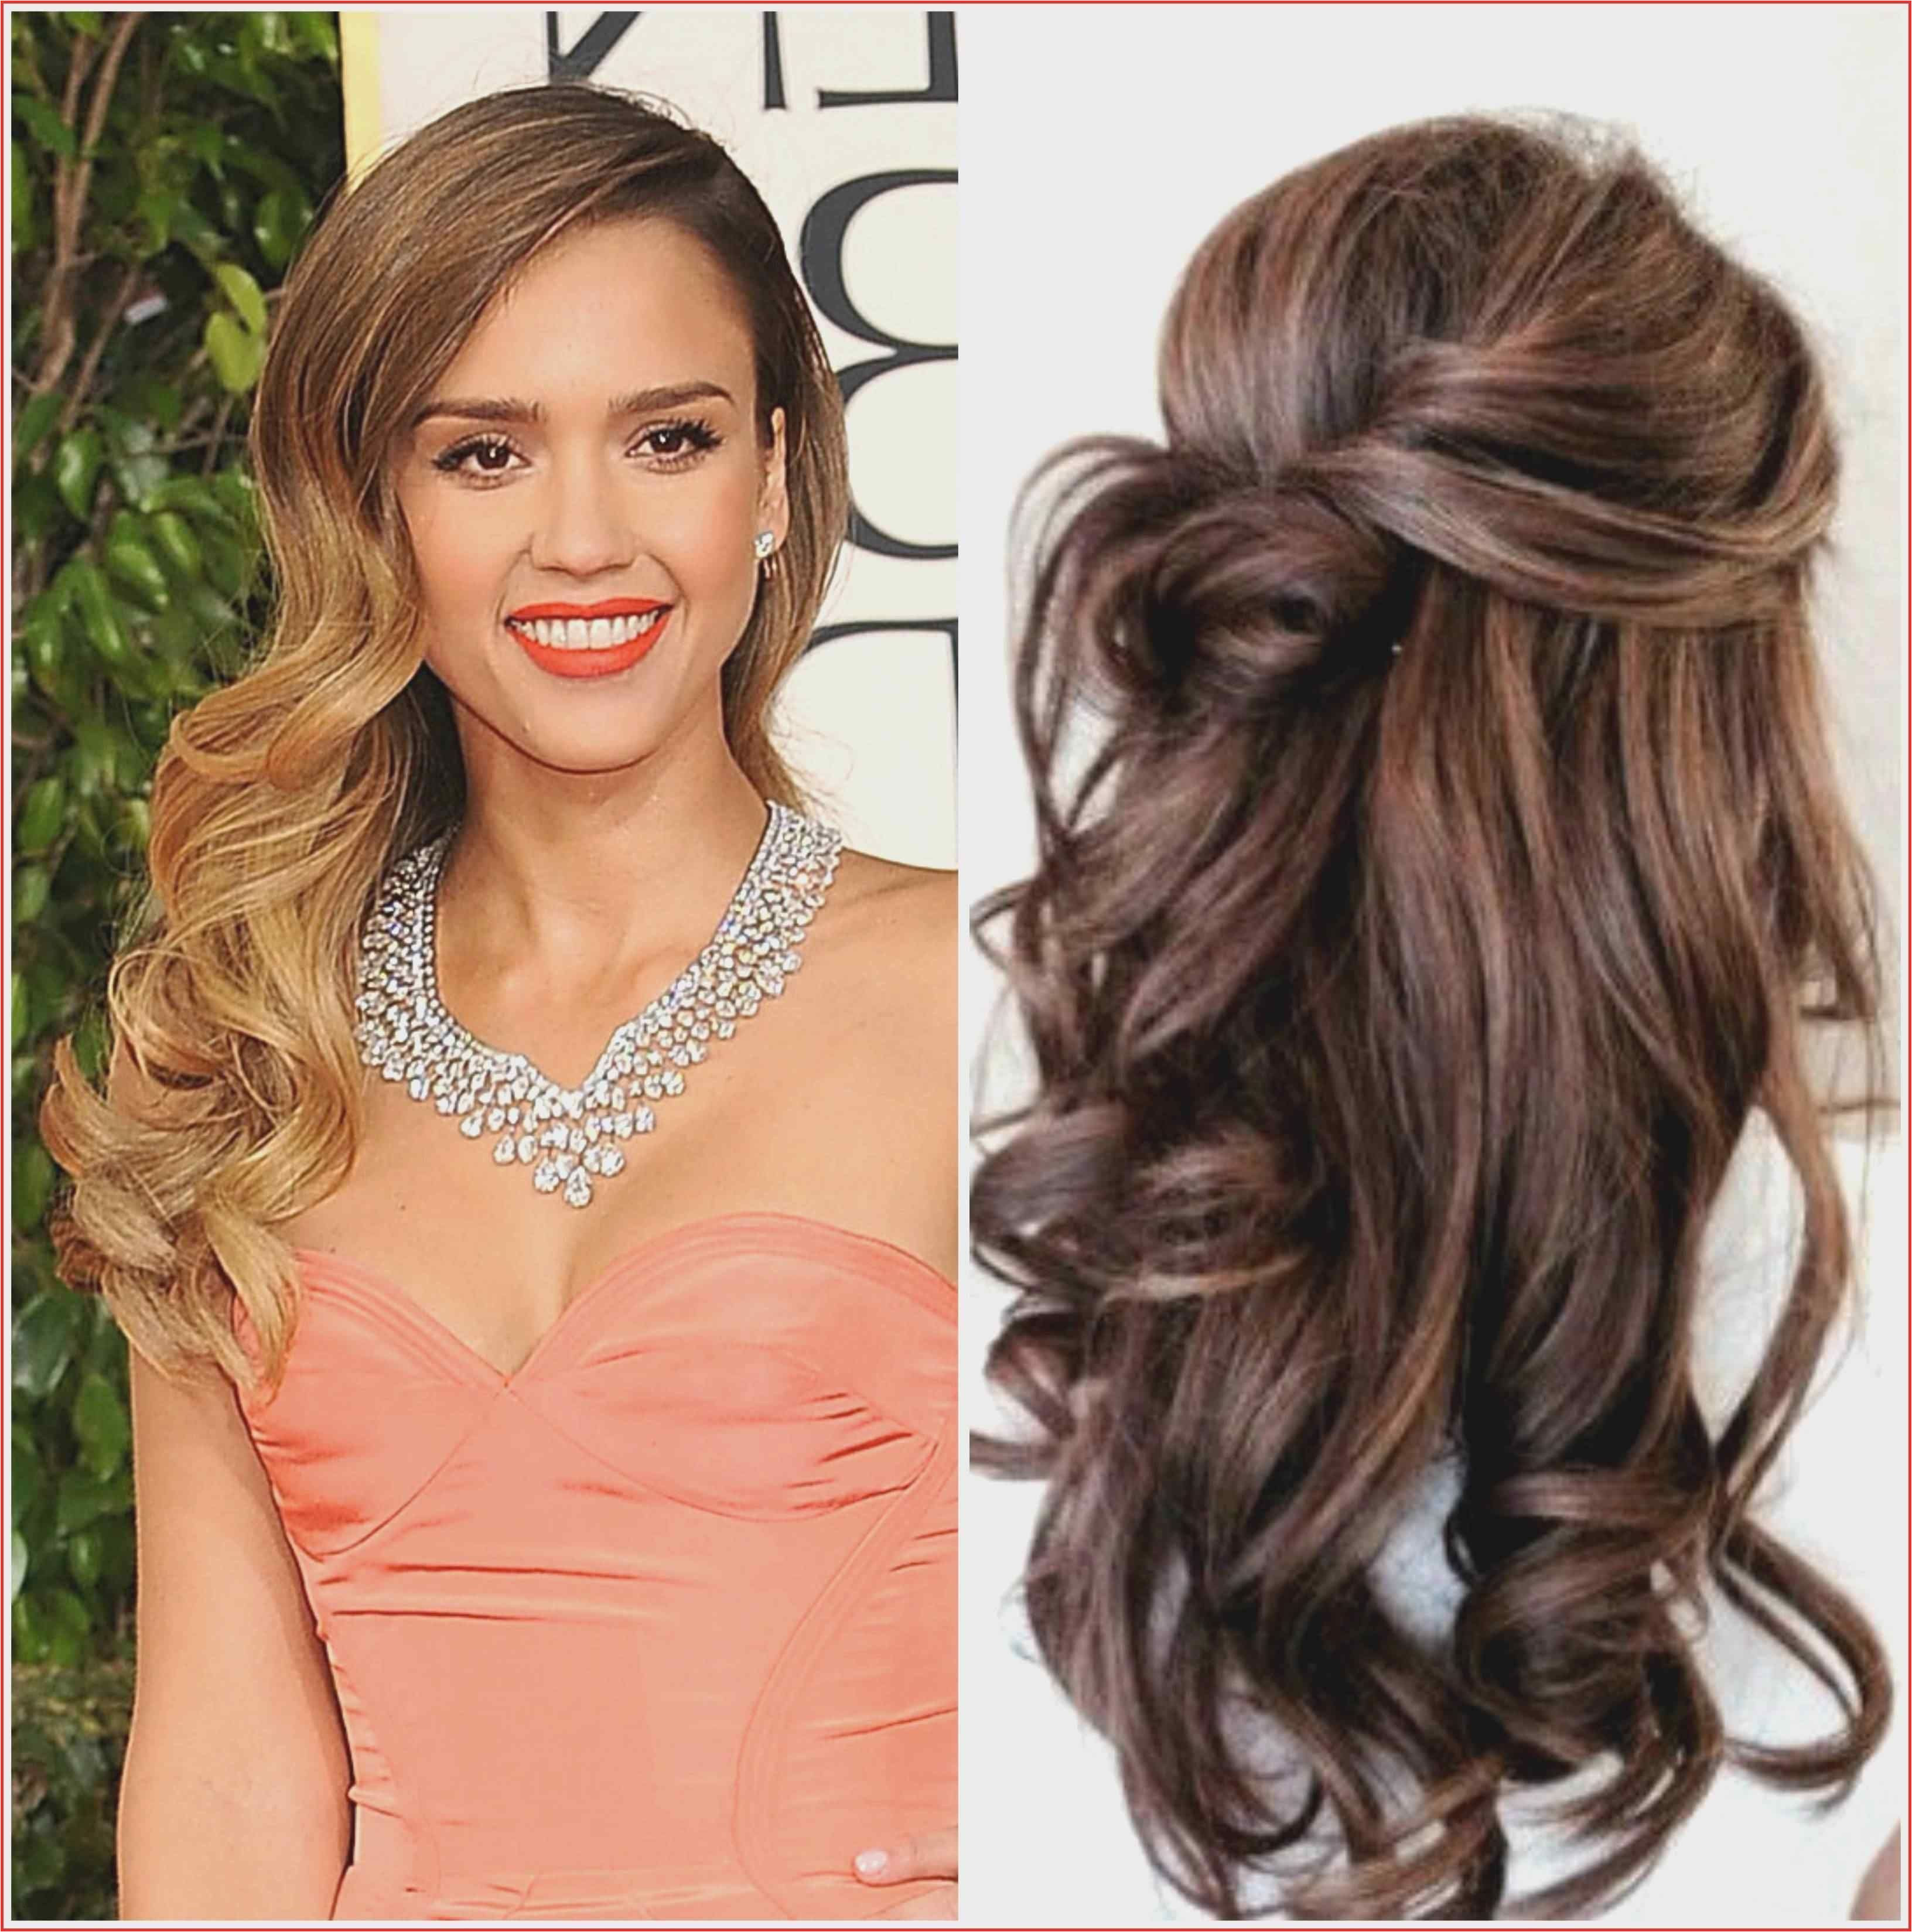 New Hairstyle for Girl Best Best Virtual Hairstyle Website Best Dyed Hair Style New